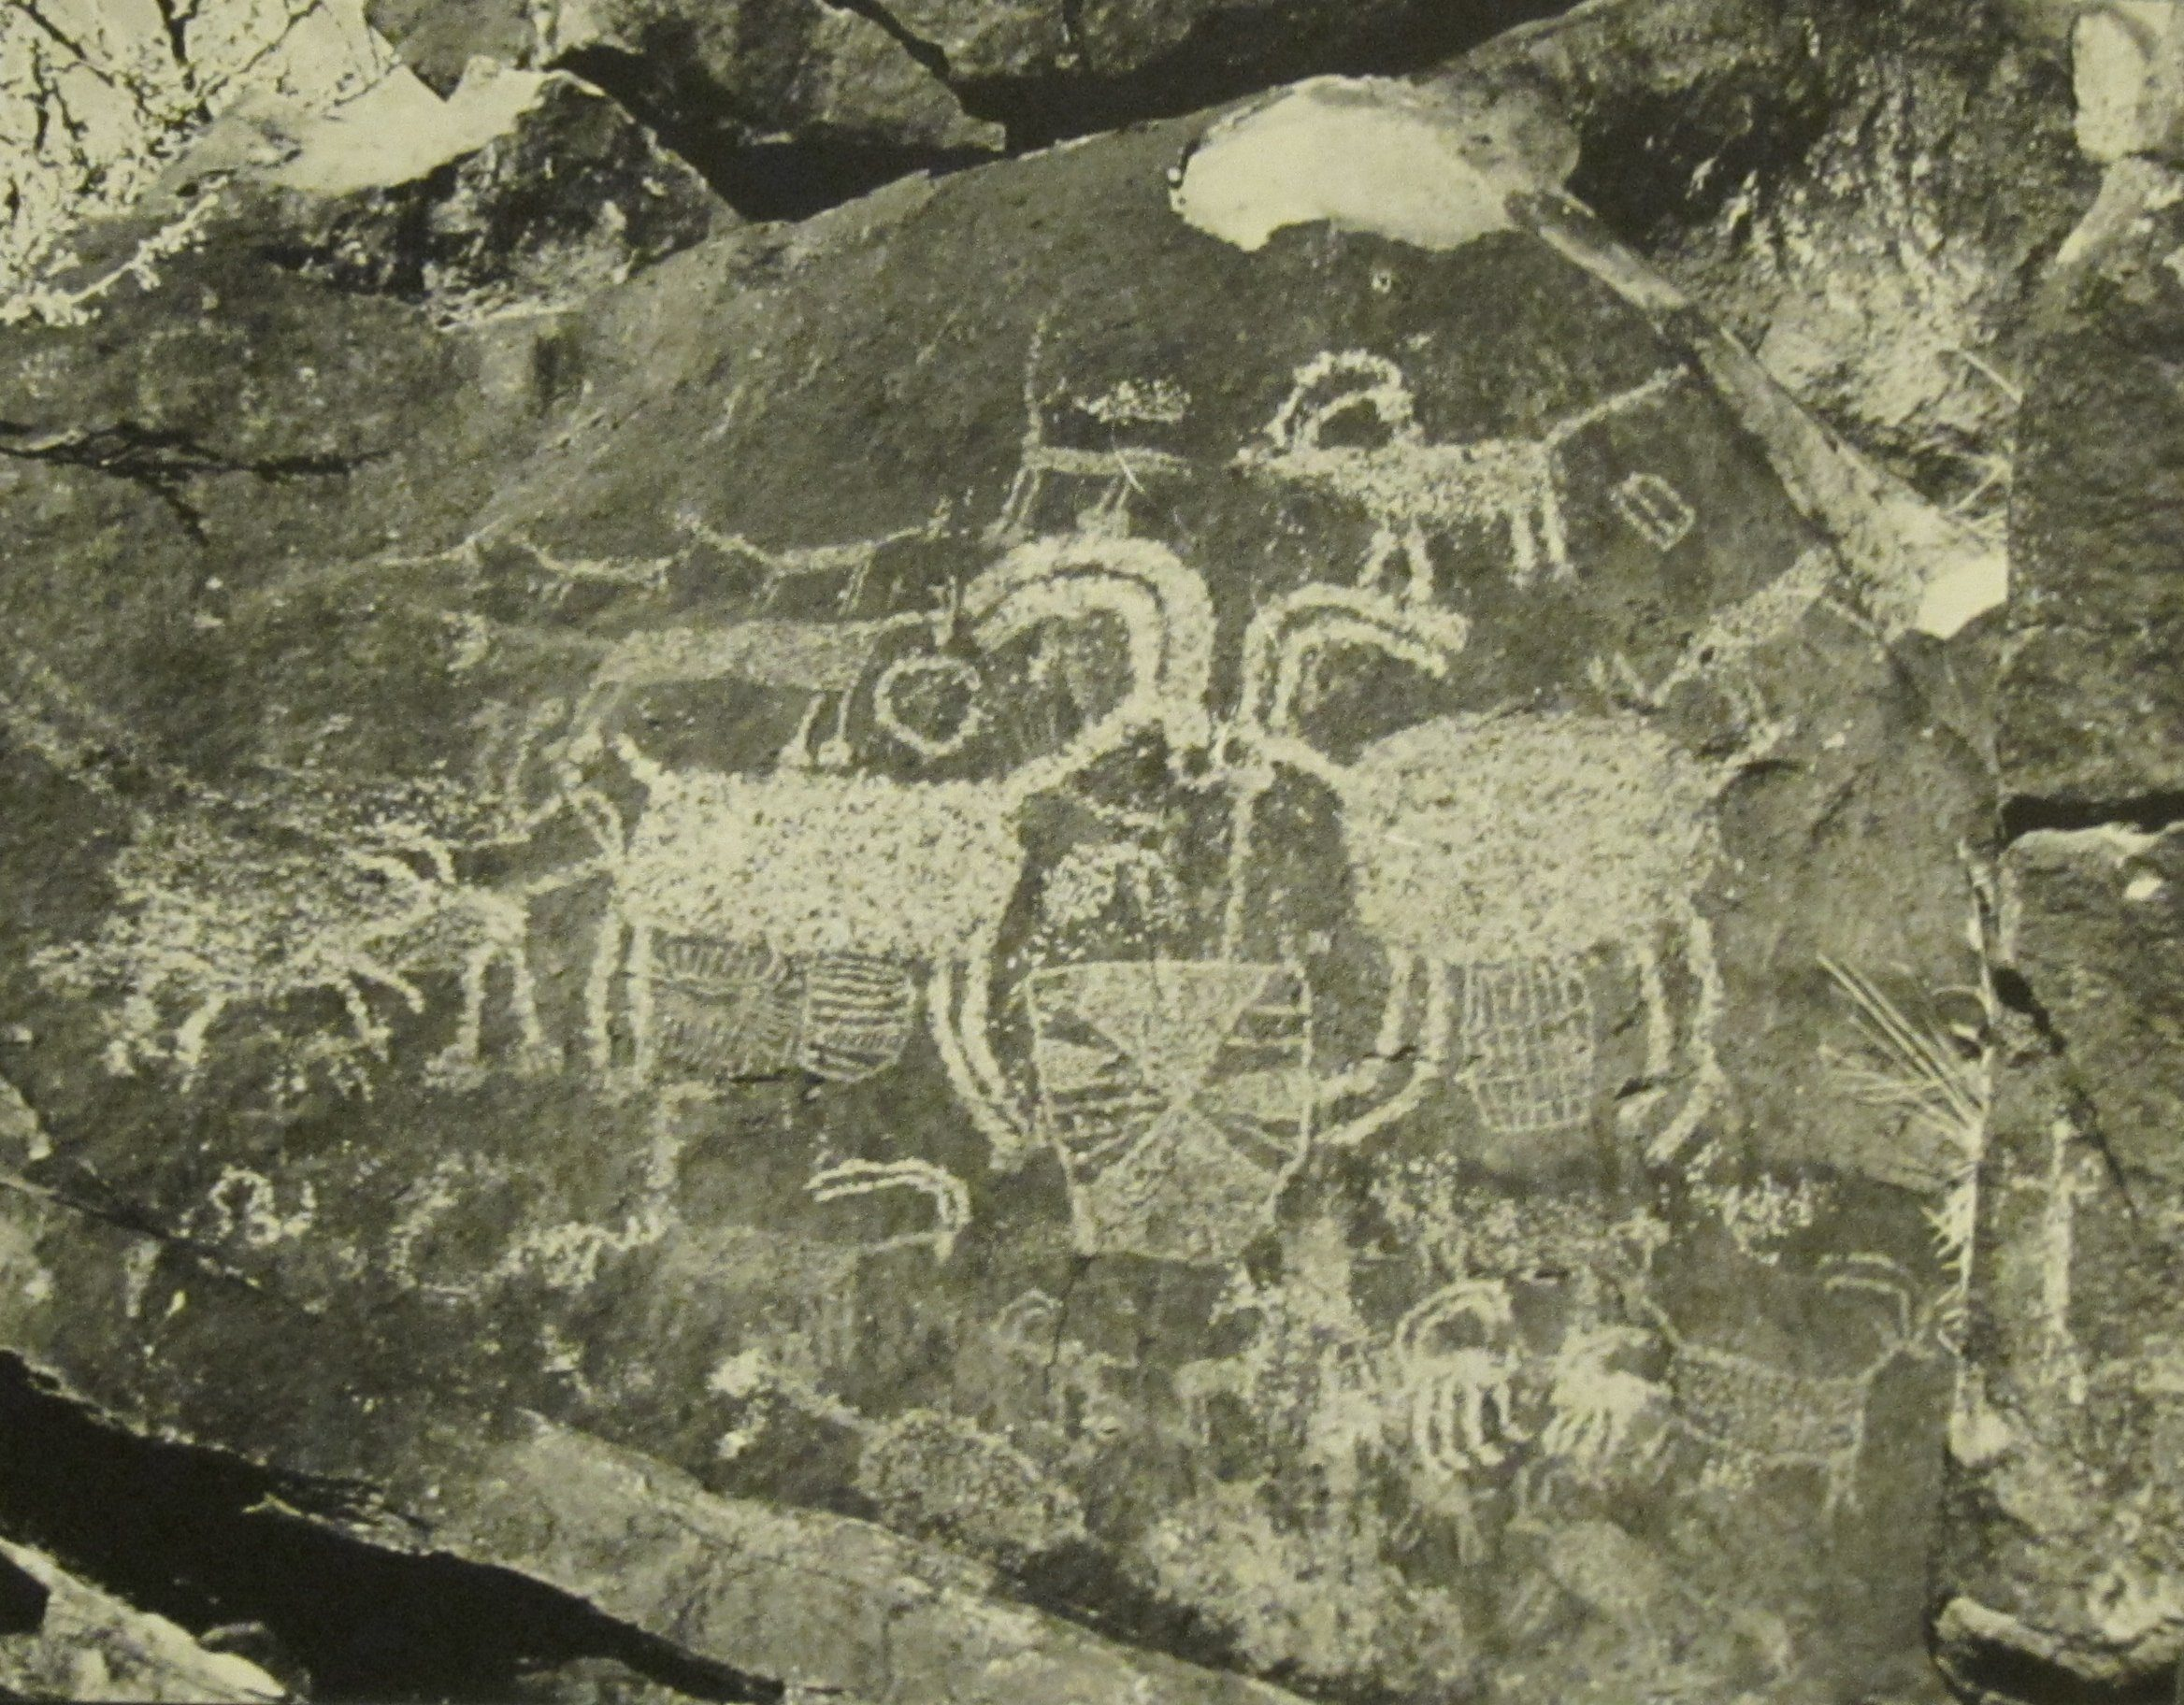 Special Lectures on the Coso Petroglyphs